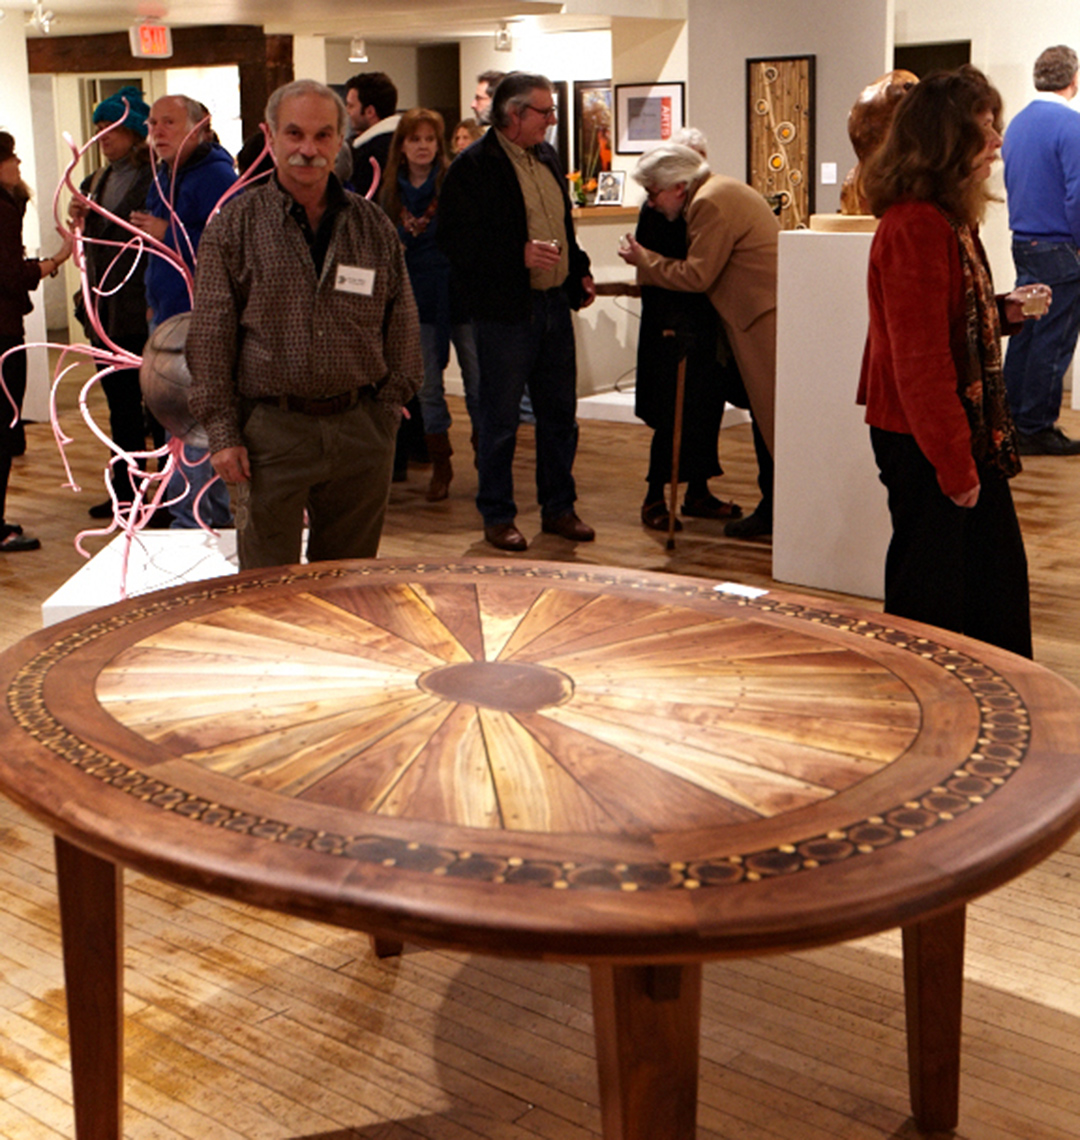 new jersey custom wood furniture-Artistic walnut sunburst table contemporay, crafts style, rustic 1